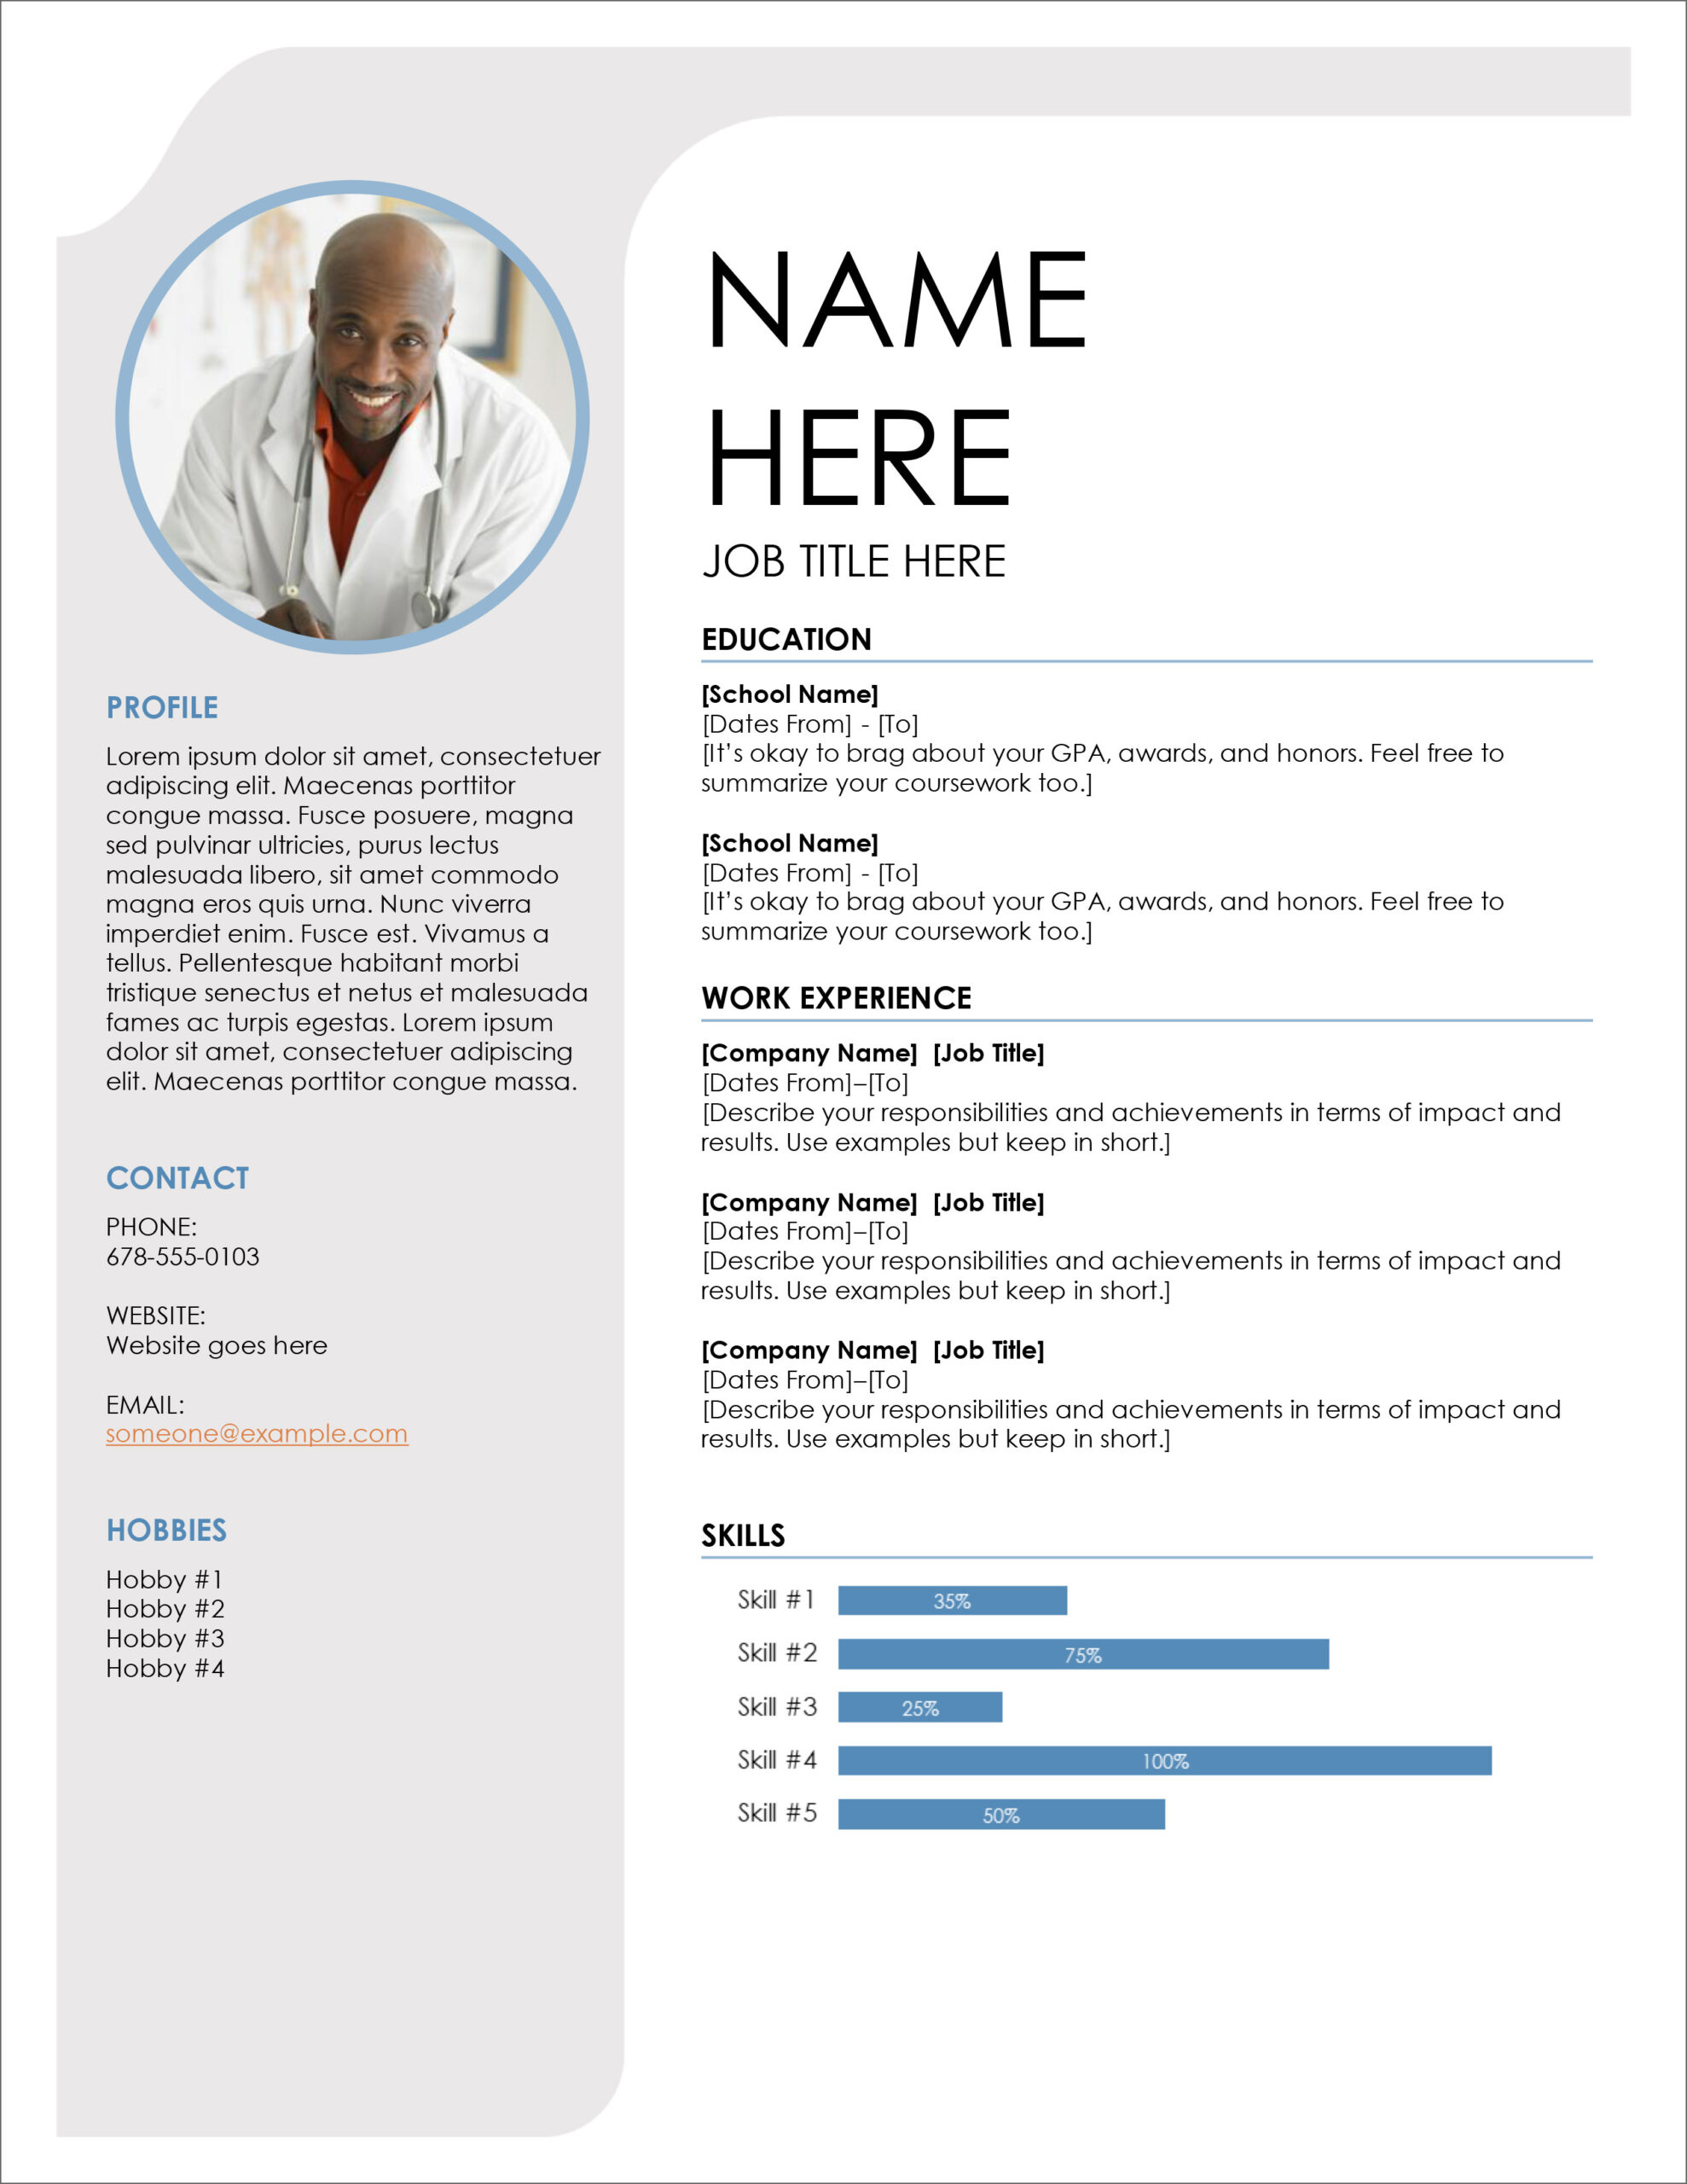 free modern resume cv templates minimalist simple clean design microsoft template pilot Resume Resume Templates 2019 Download